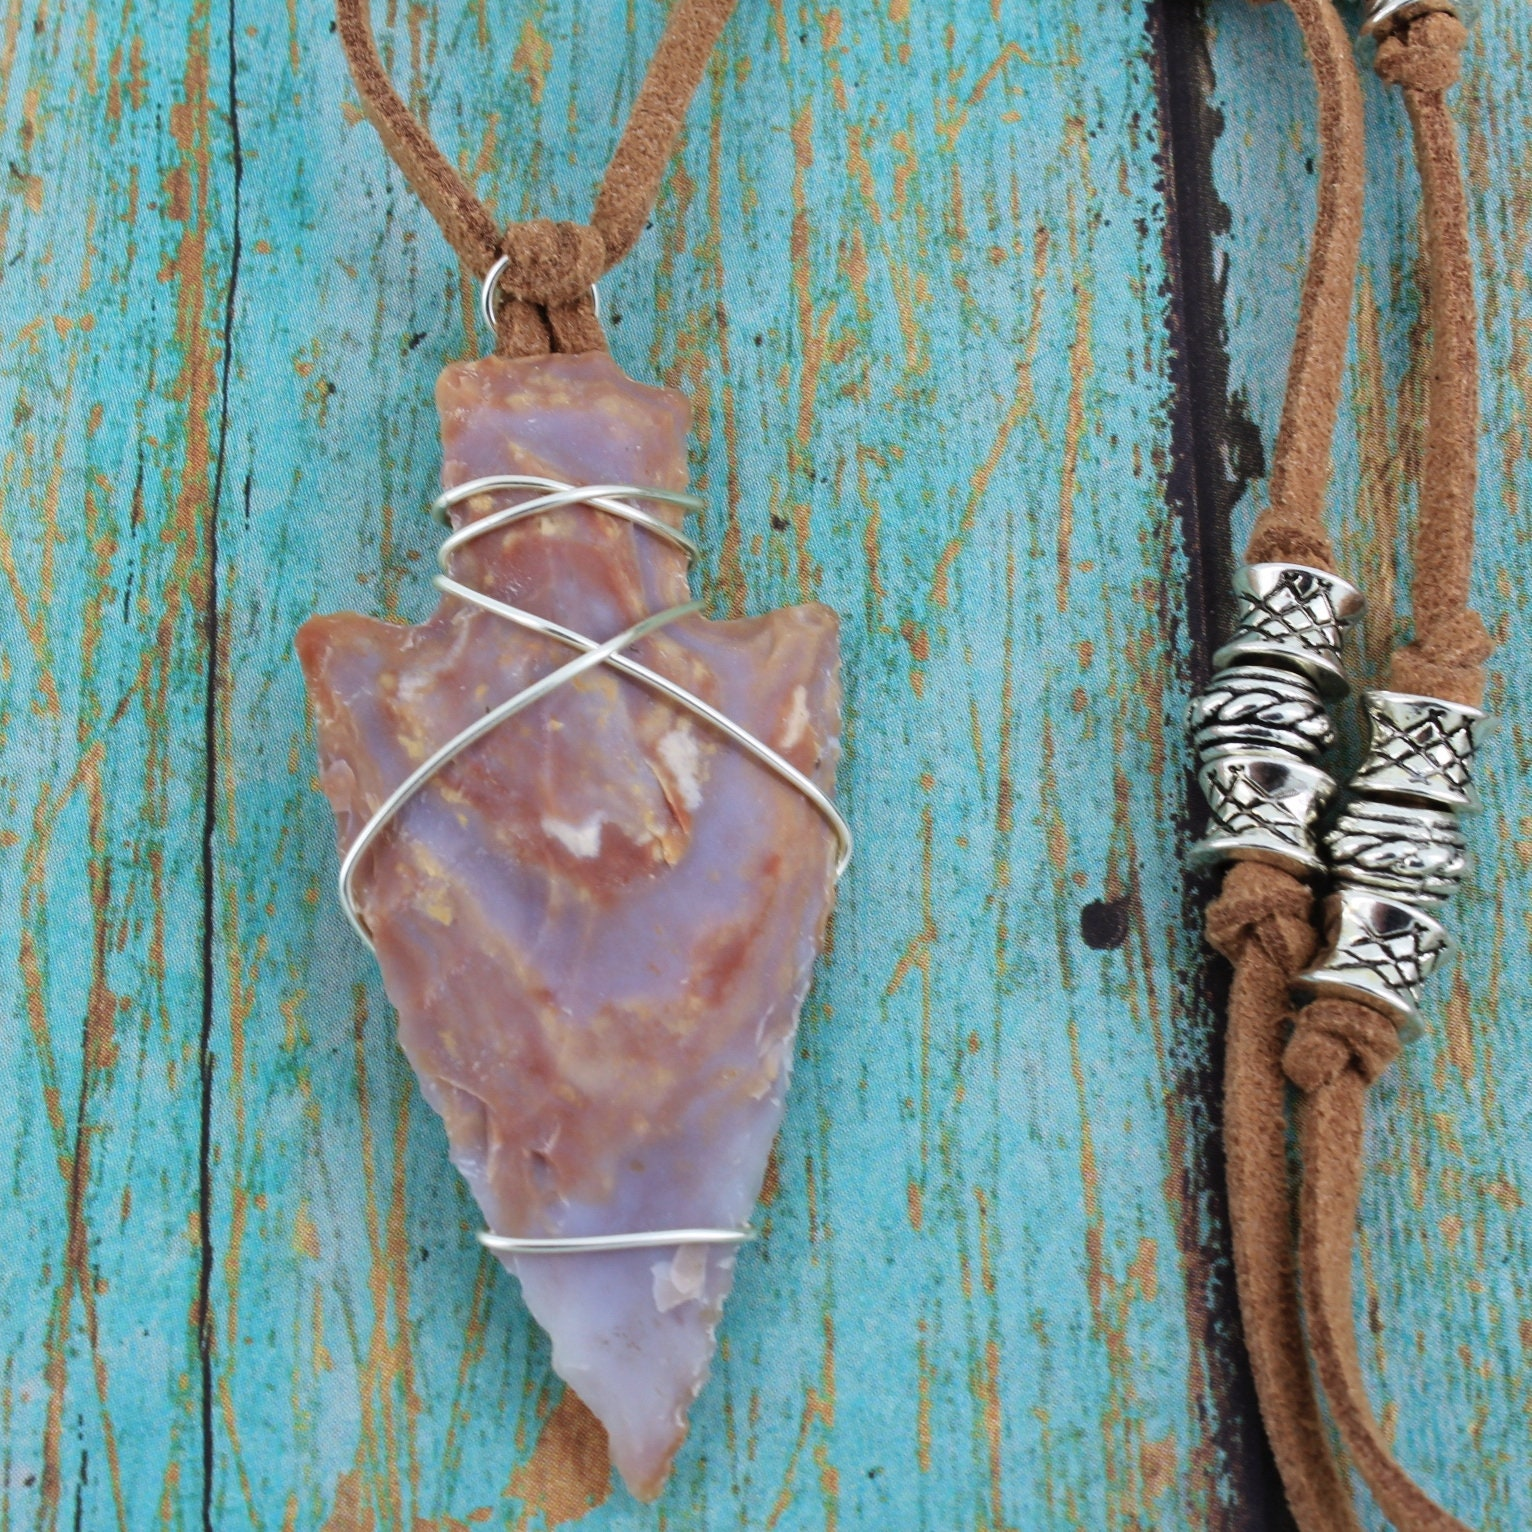 Silver,Wrapped,Arrowhead,with,Tan,Suede,Cord,Necklace,Jewelry,knapped_jasper,primitive_style,unisex_necklace,arrowhead_necklace,mens_necklace,wired_arrowhead,Native_American,wirewrapped,locally_sourced,one_of_a_kind,blue_and_rust,silver_wirewrap,suede_cord,Stone